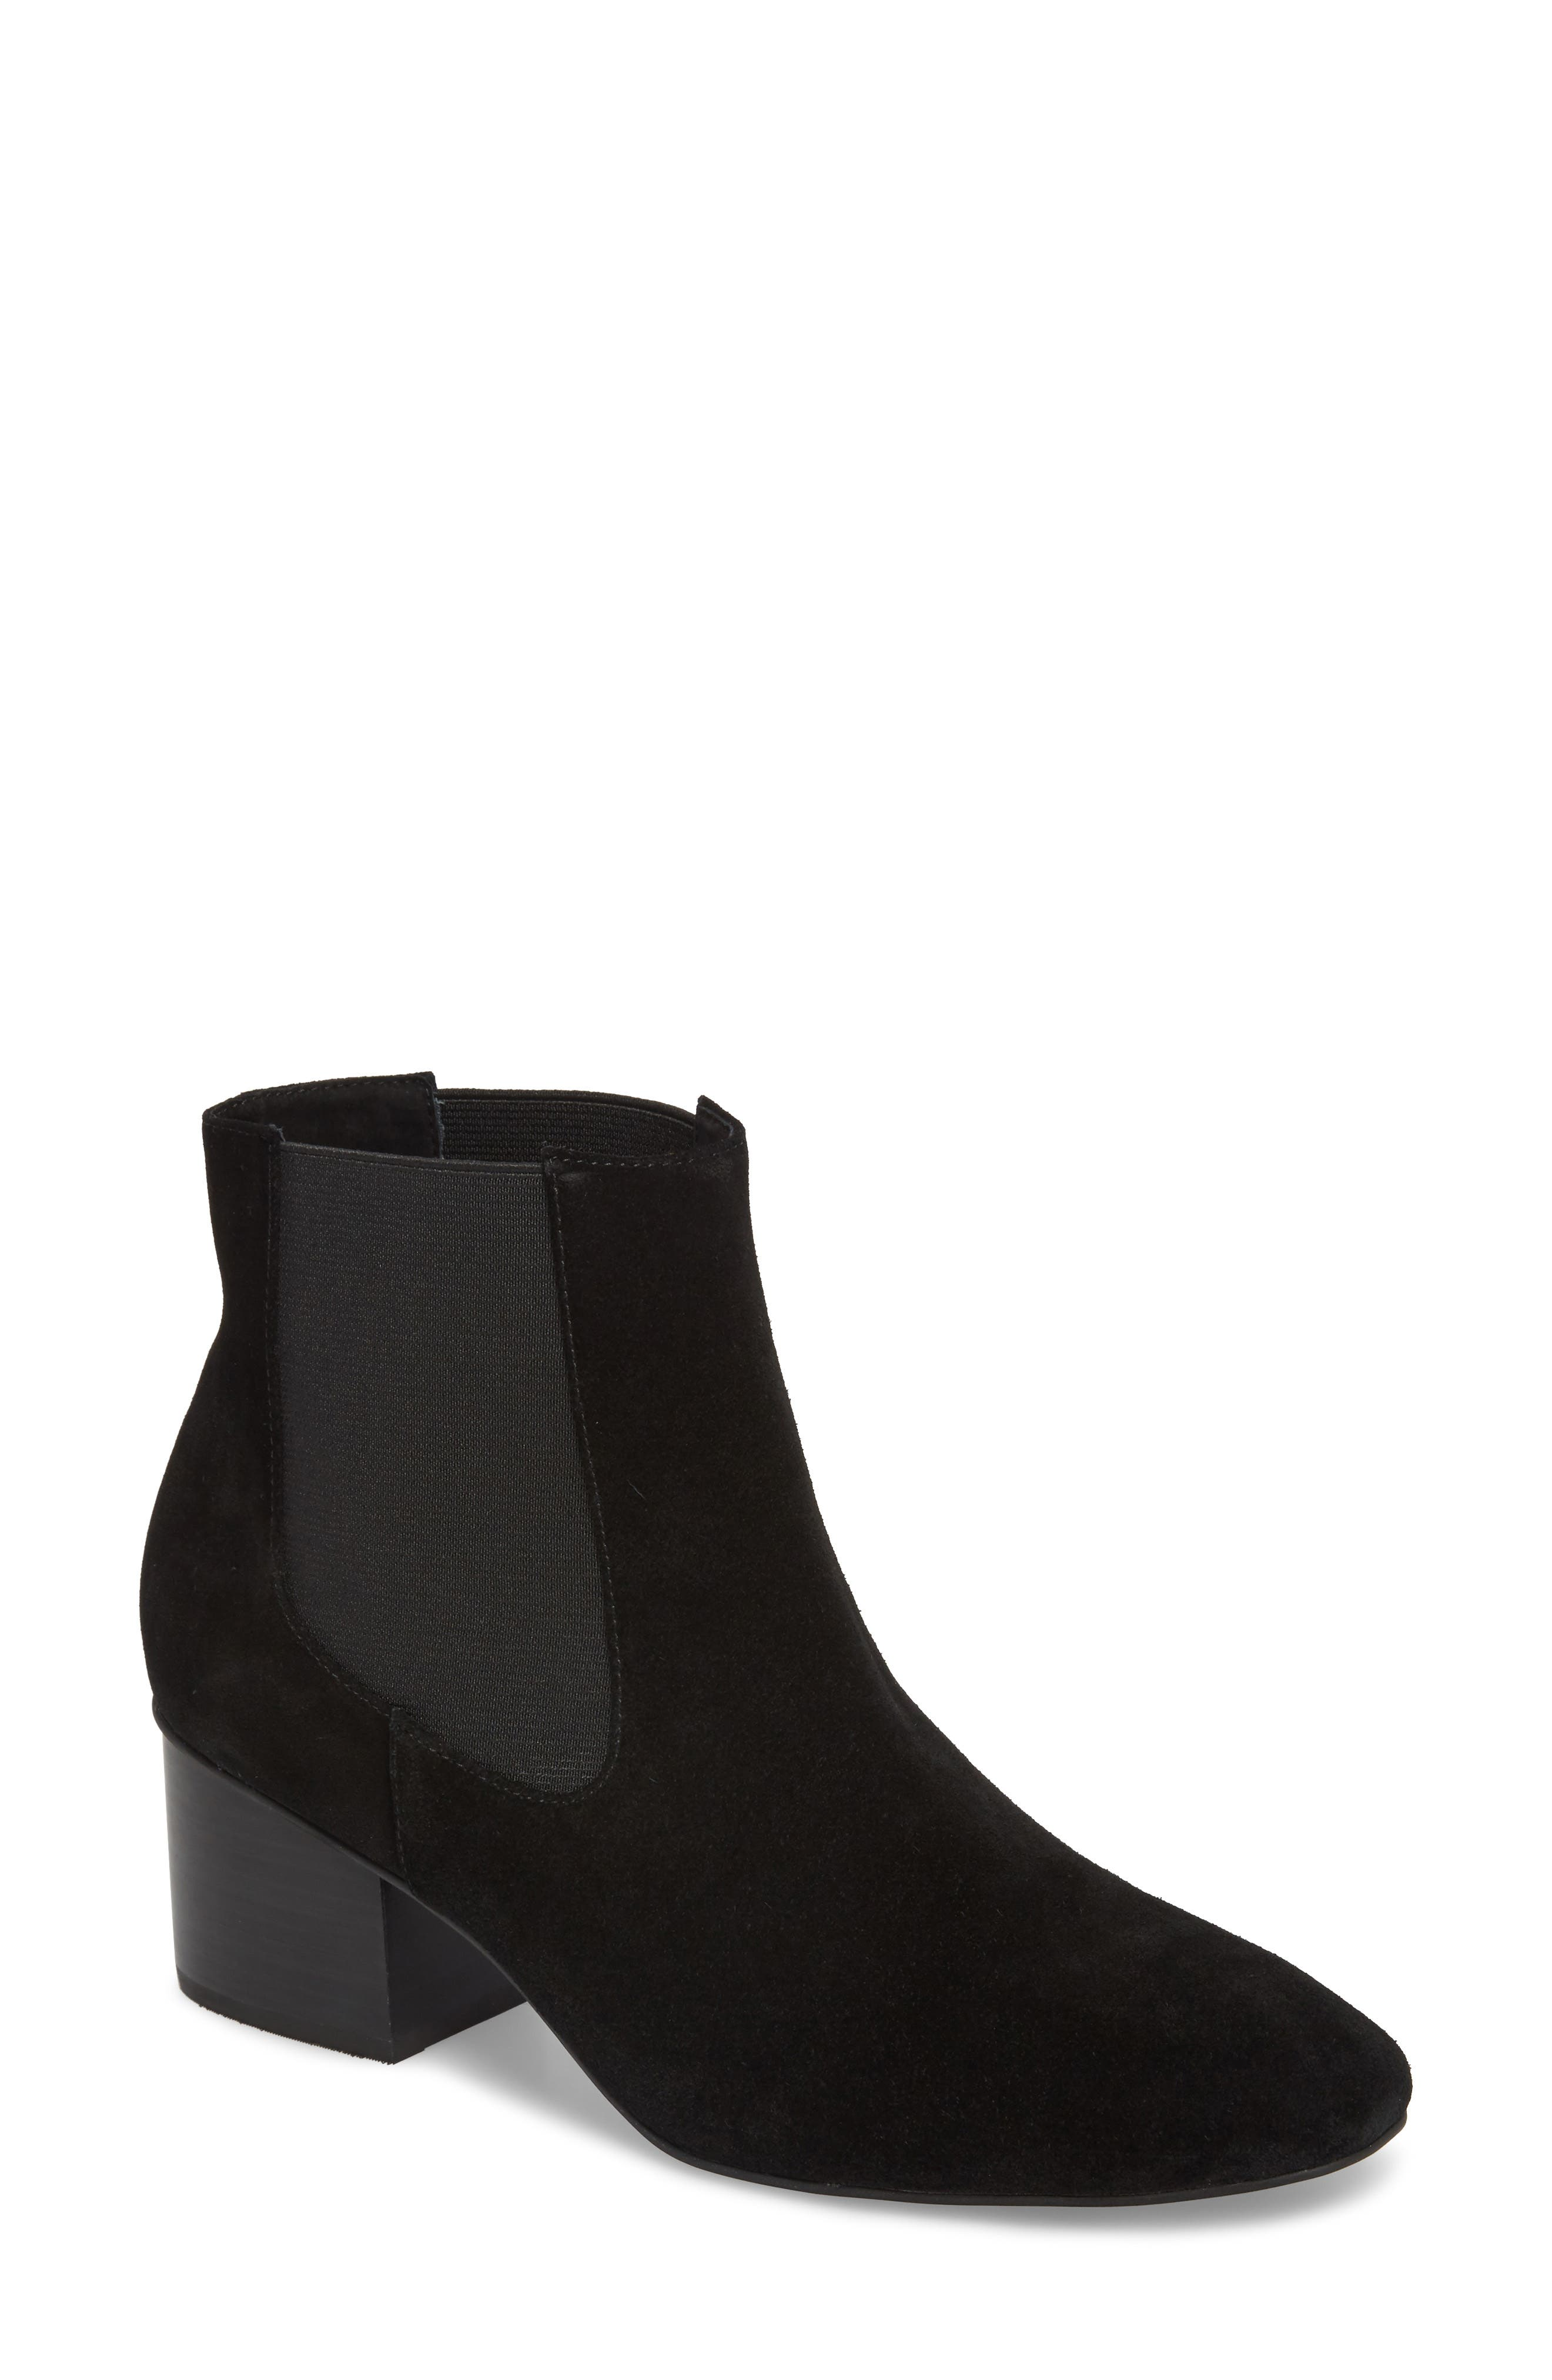 Tucker Chelsea Bootie,                             Main thumbnail 1, color,                             Black Leather